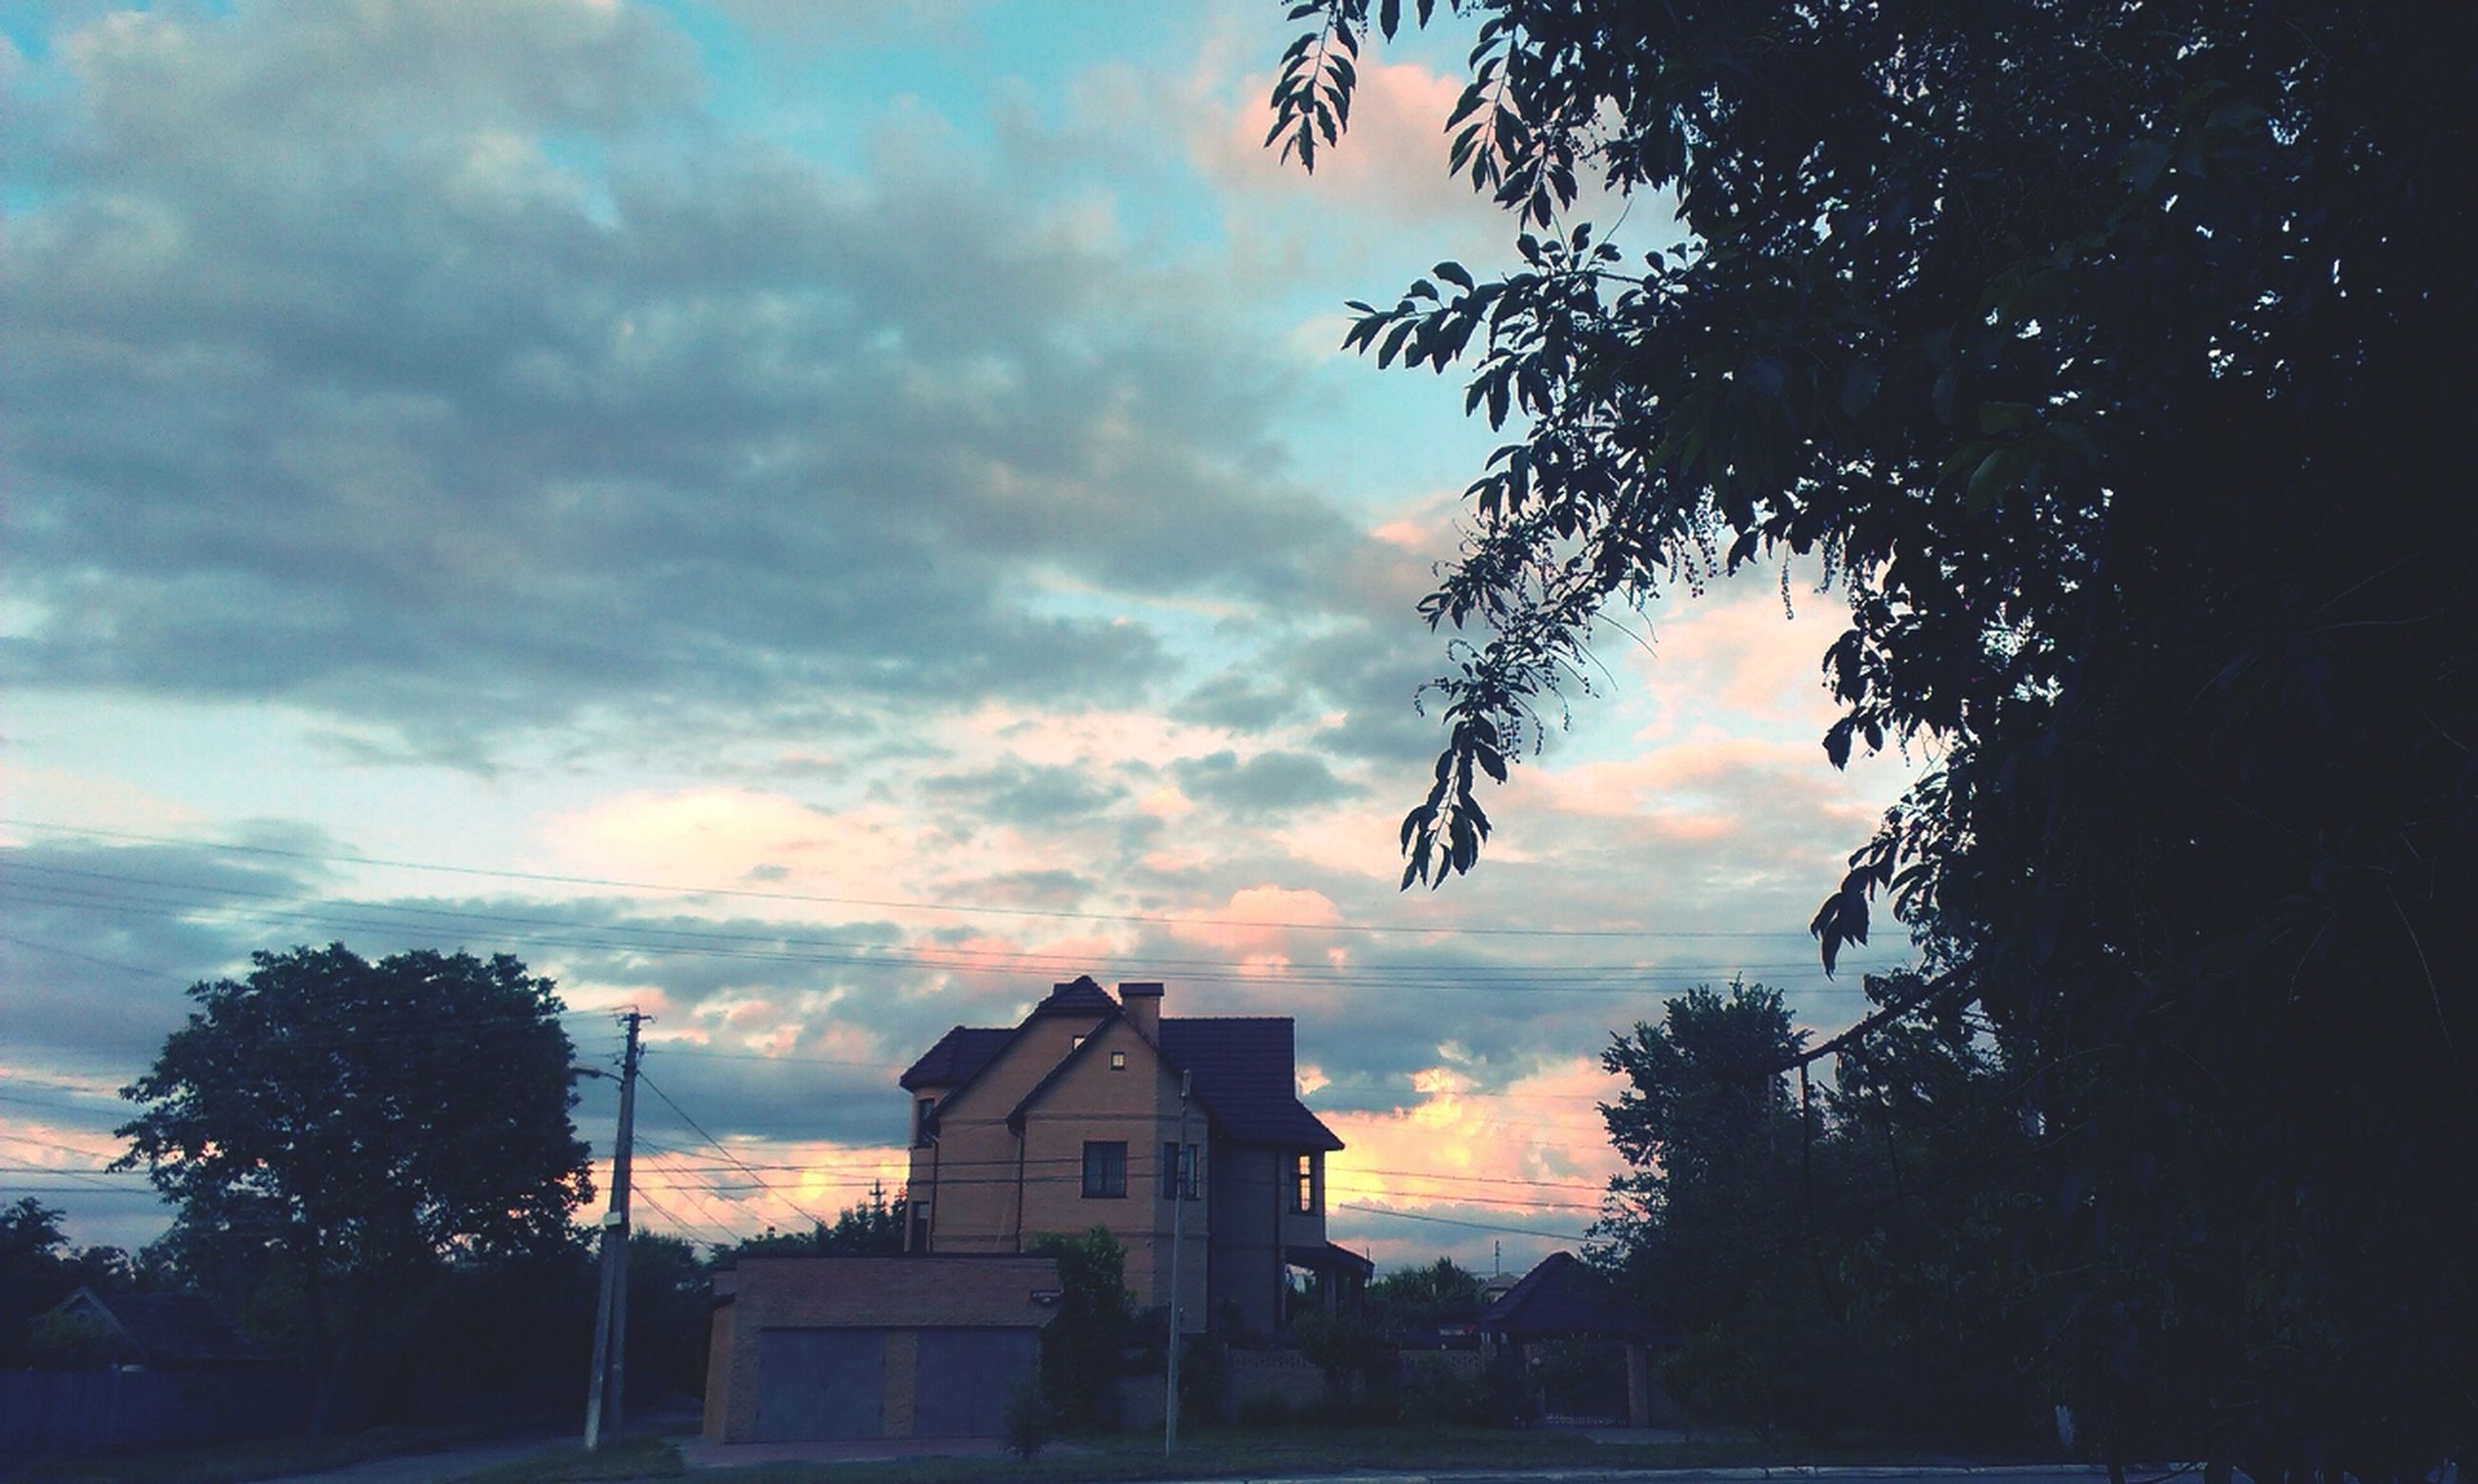 sky, cloud - sky, tree, building exterior, silhouette, built structure, architecture, cloudy, low angle view, sunset, cloud, dusk, house, weather, nature, bare tree, dramatic sky, outdoors, overcast, street light